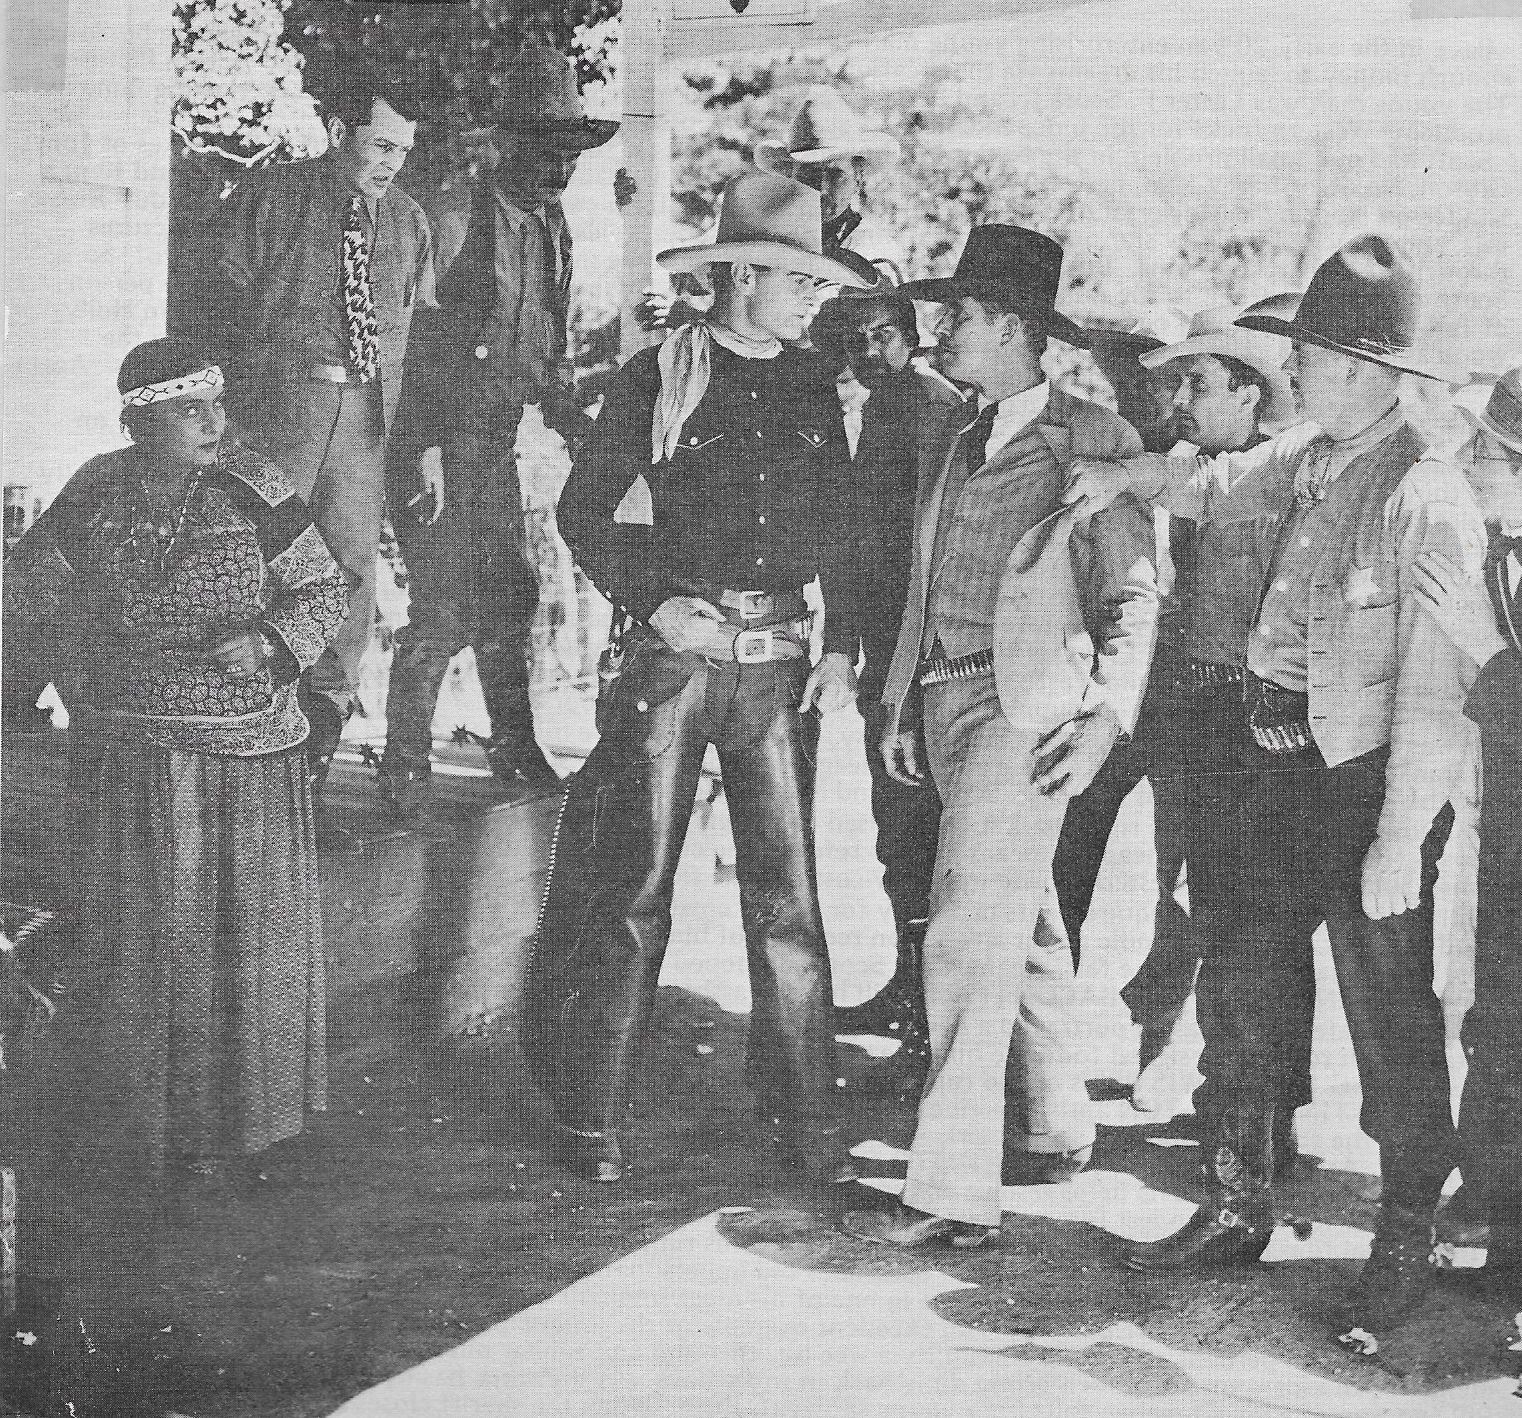 Ken Broeker, Bartlett A. Carre, Allen Holbrook, Tom Palky, Marin Sais, and Jay Wilsey in The Fighting Cowboy (1933)